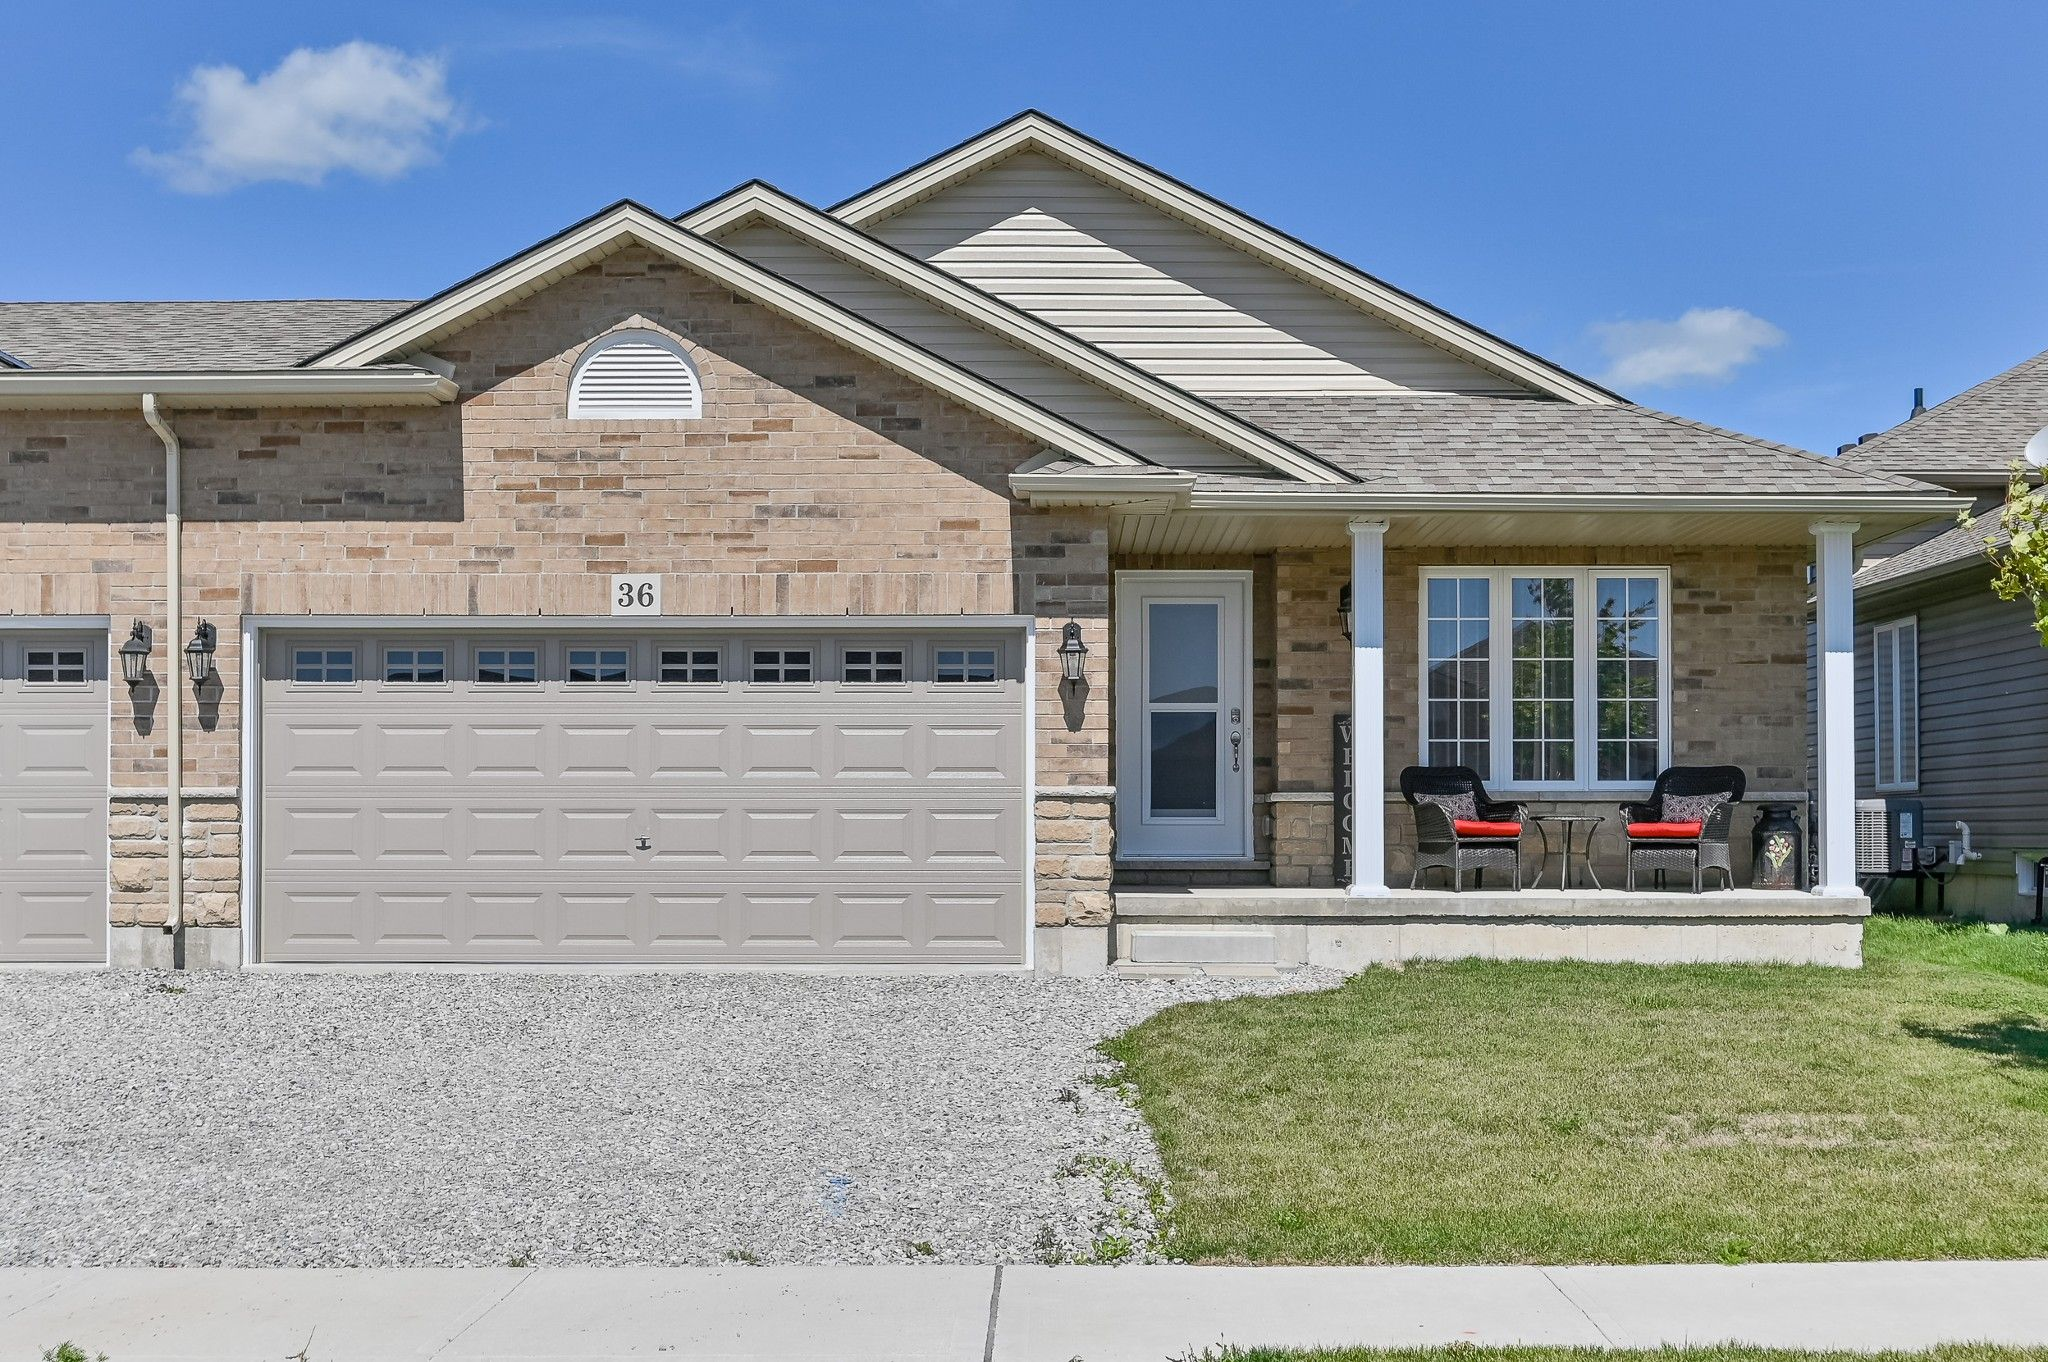 Main Photo: 36 East Helen Drive in Hagersville: House for sale : MLS®# H4065714